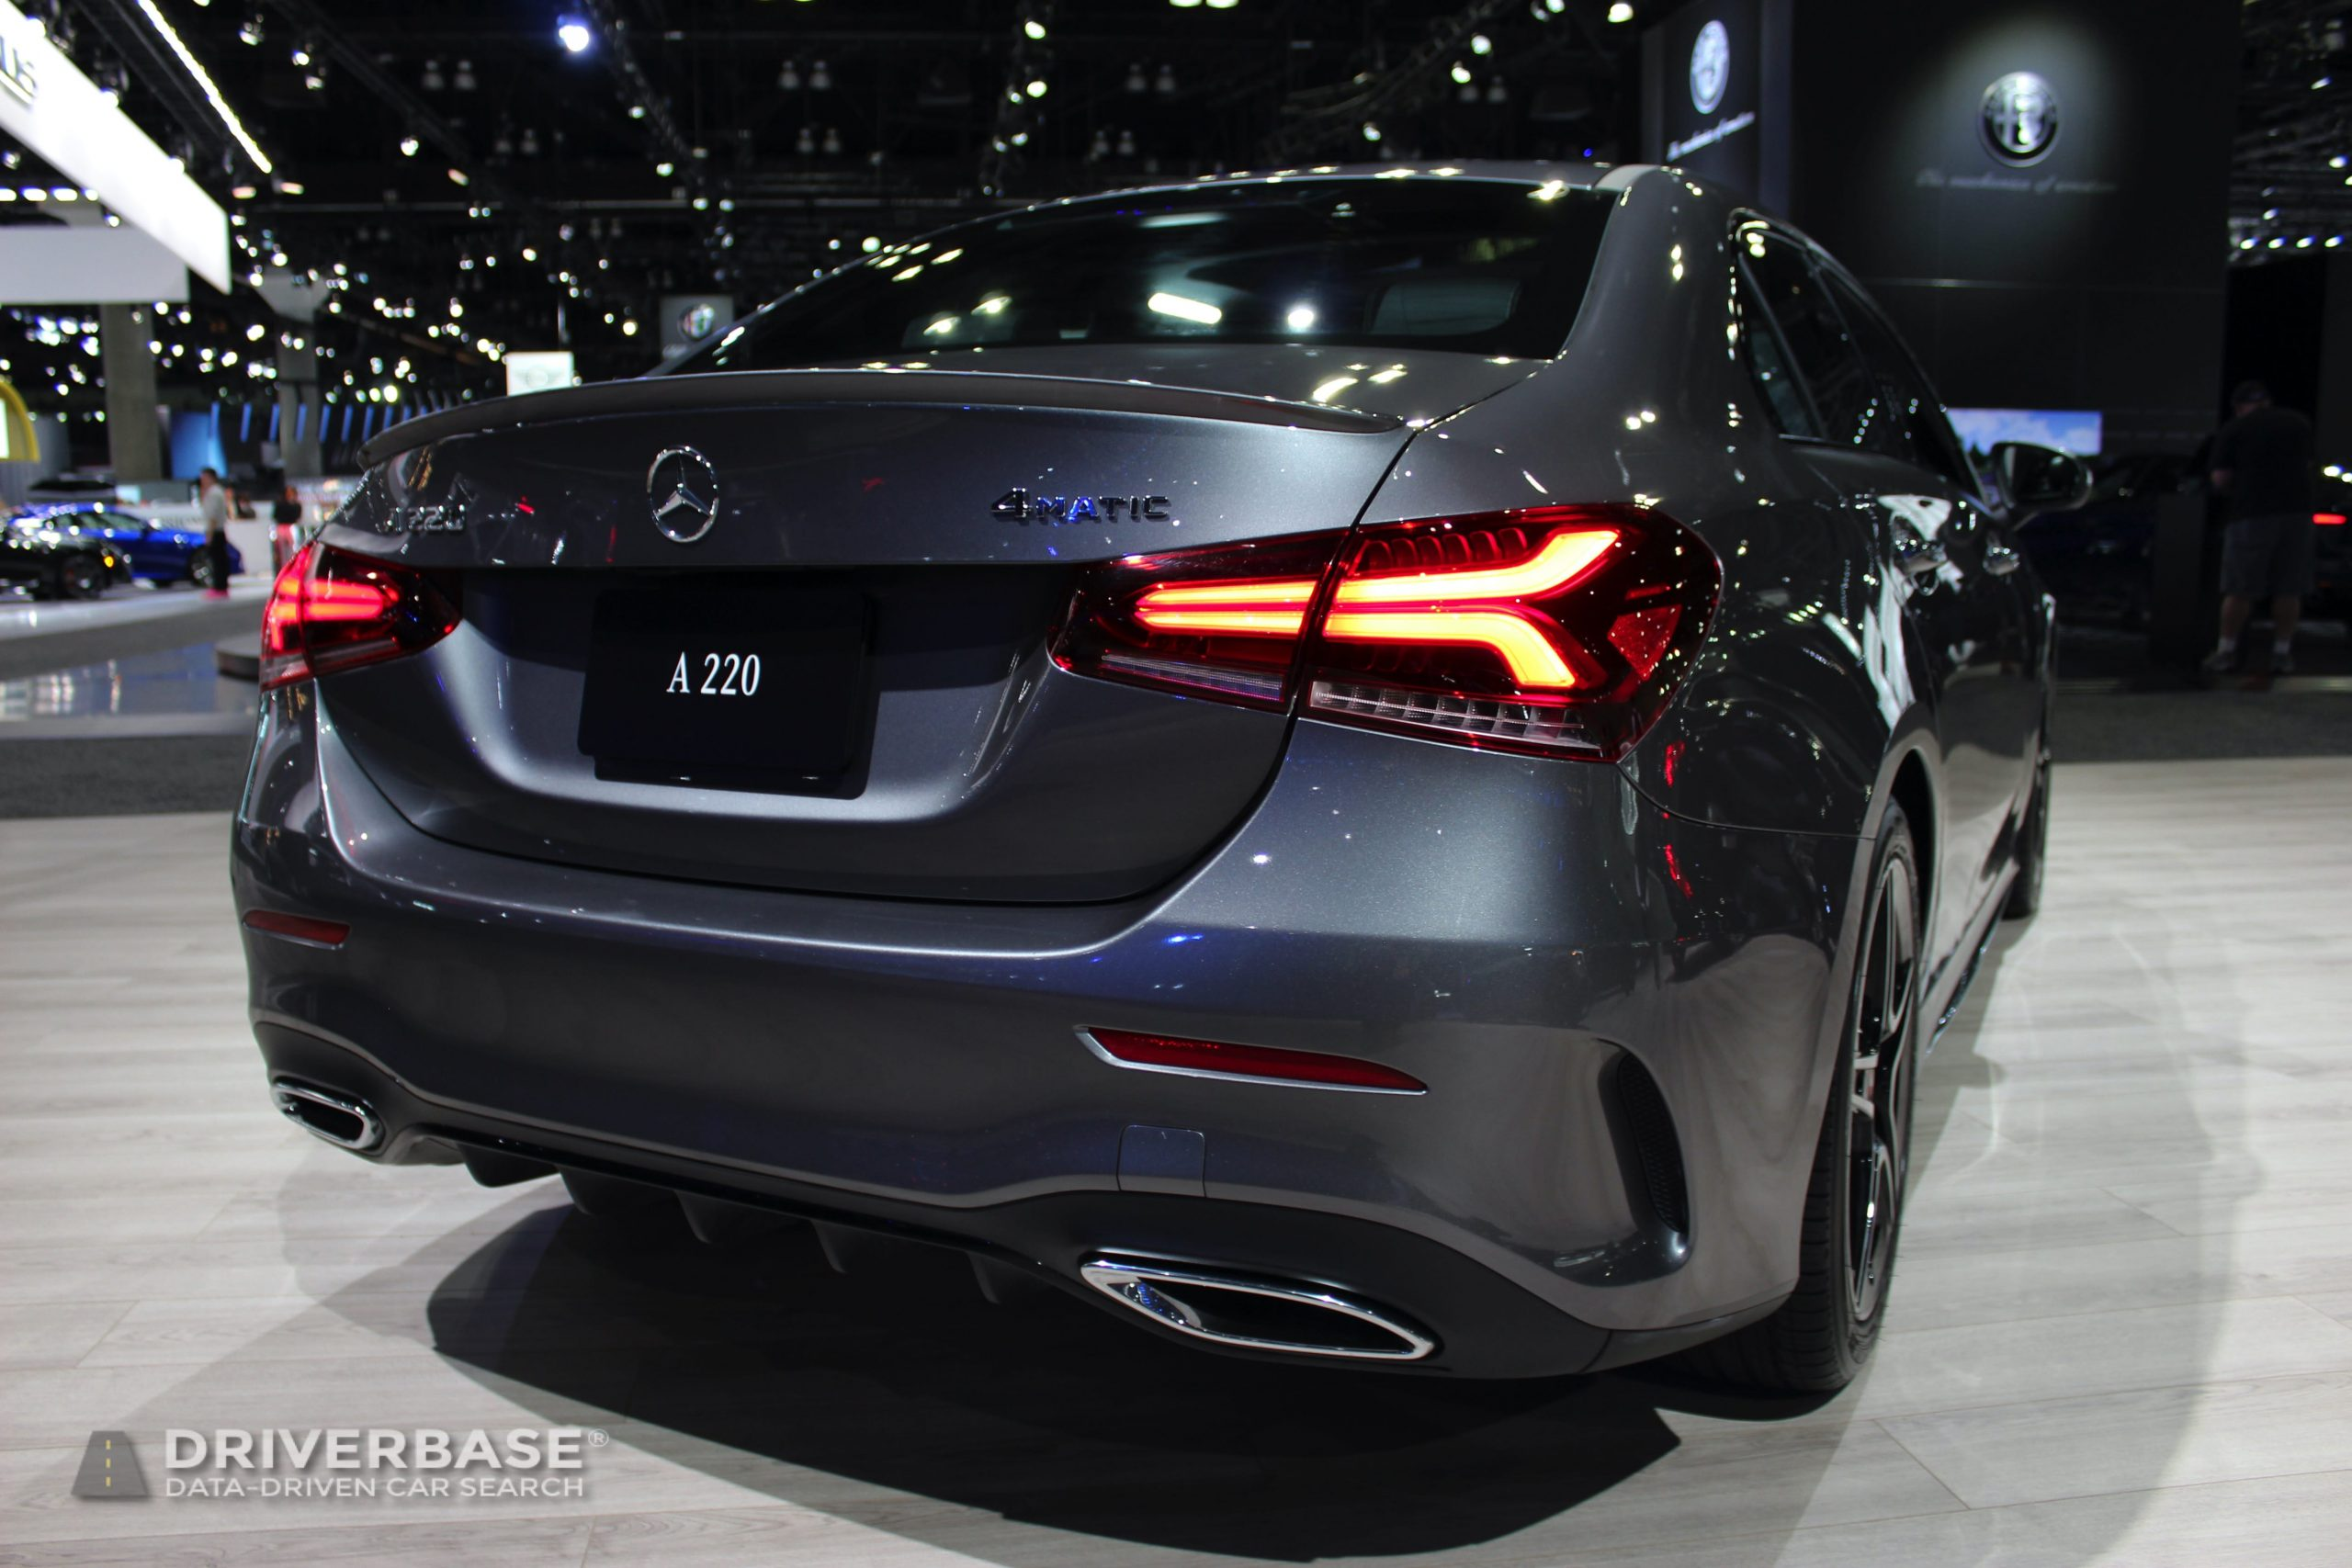 2020 Mercedes-Benz A 220 at the 2019 Los Angeles Auto Show